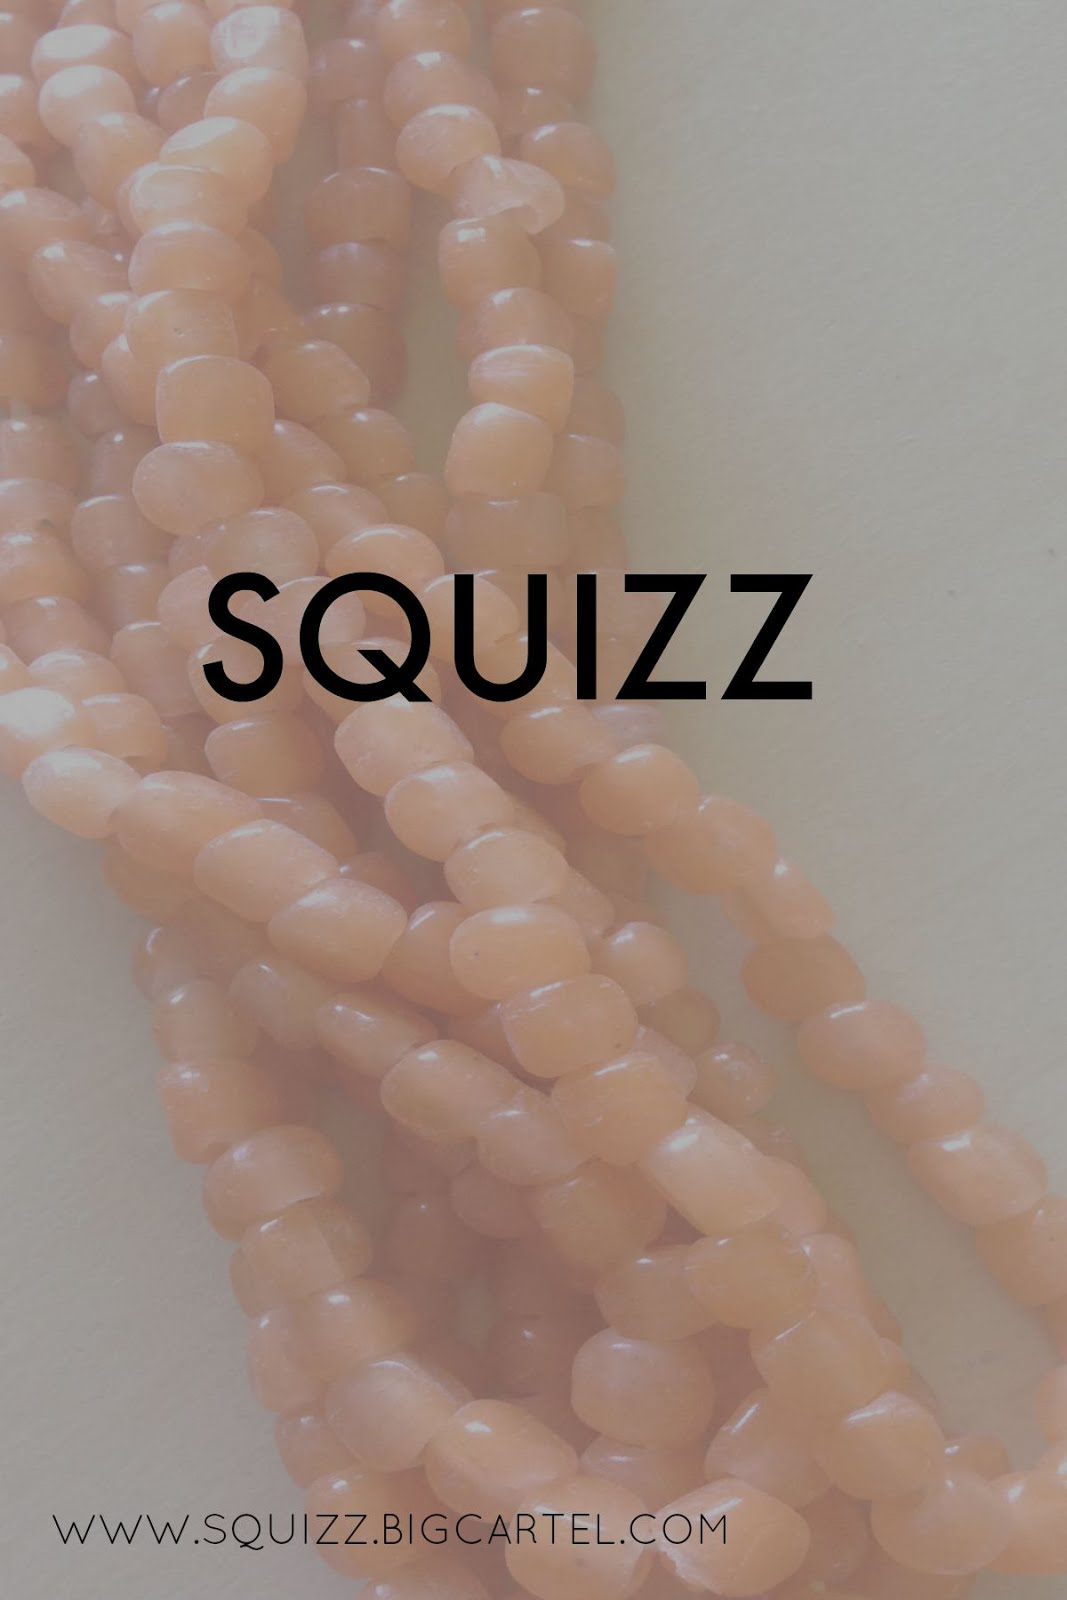 TAKE A SQUIZZ AT